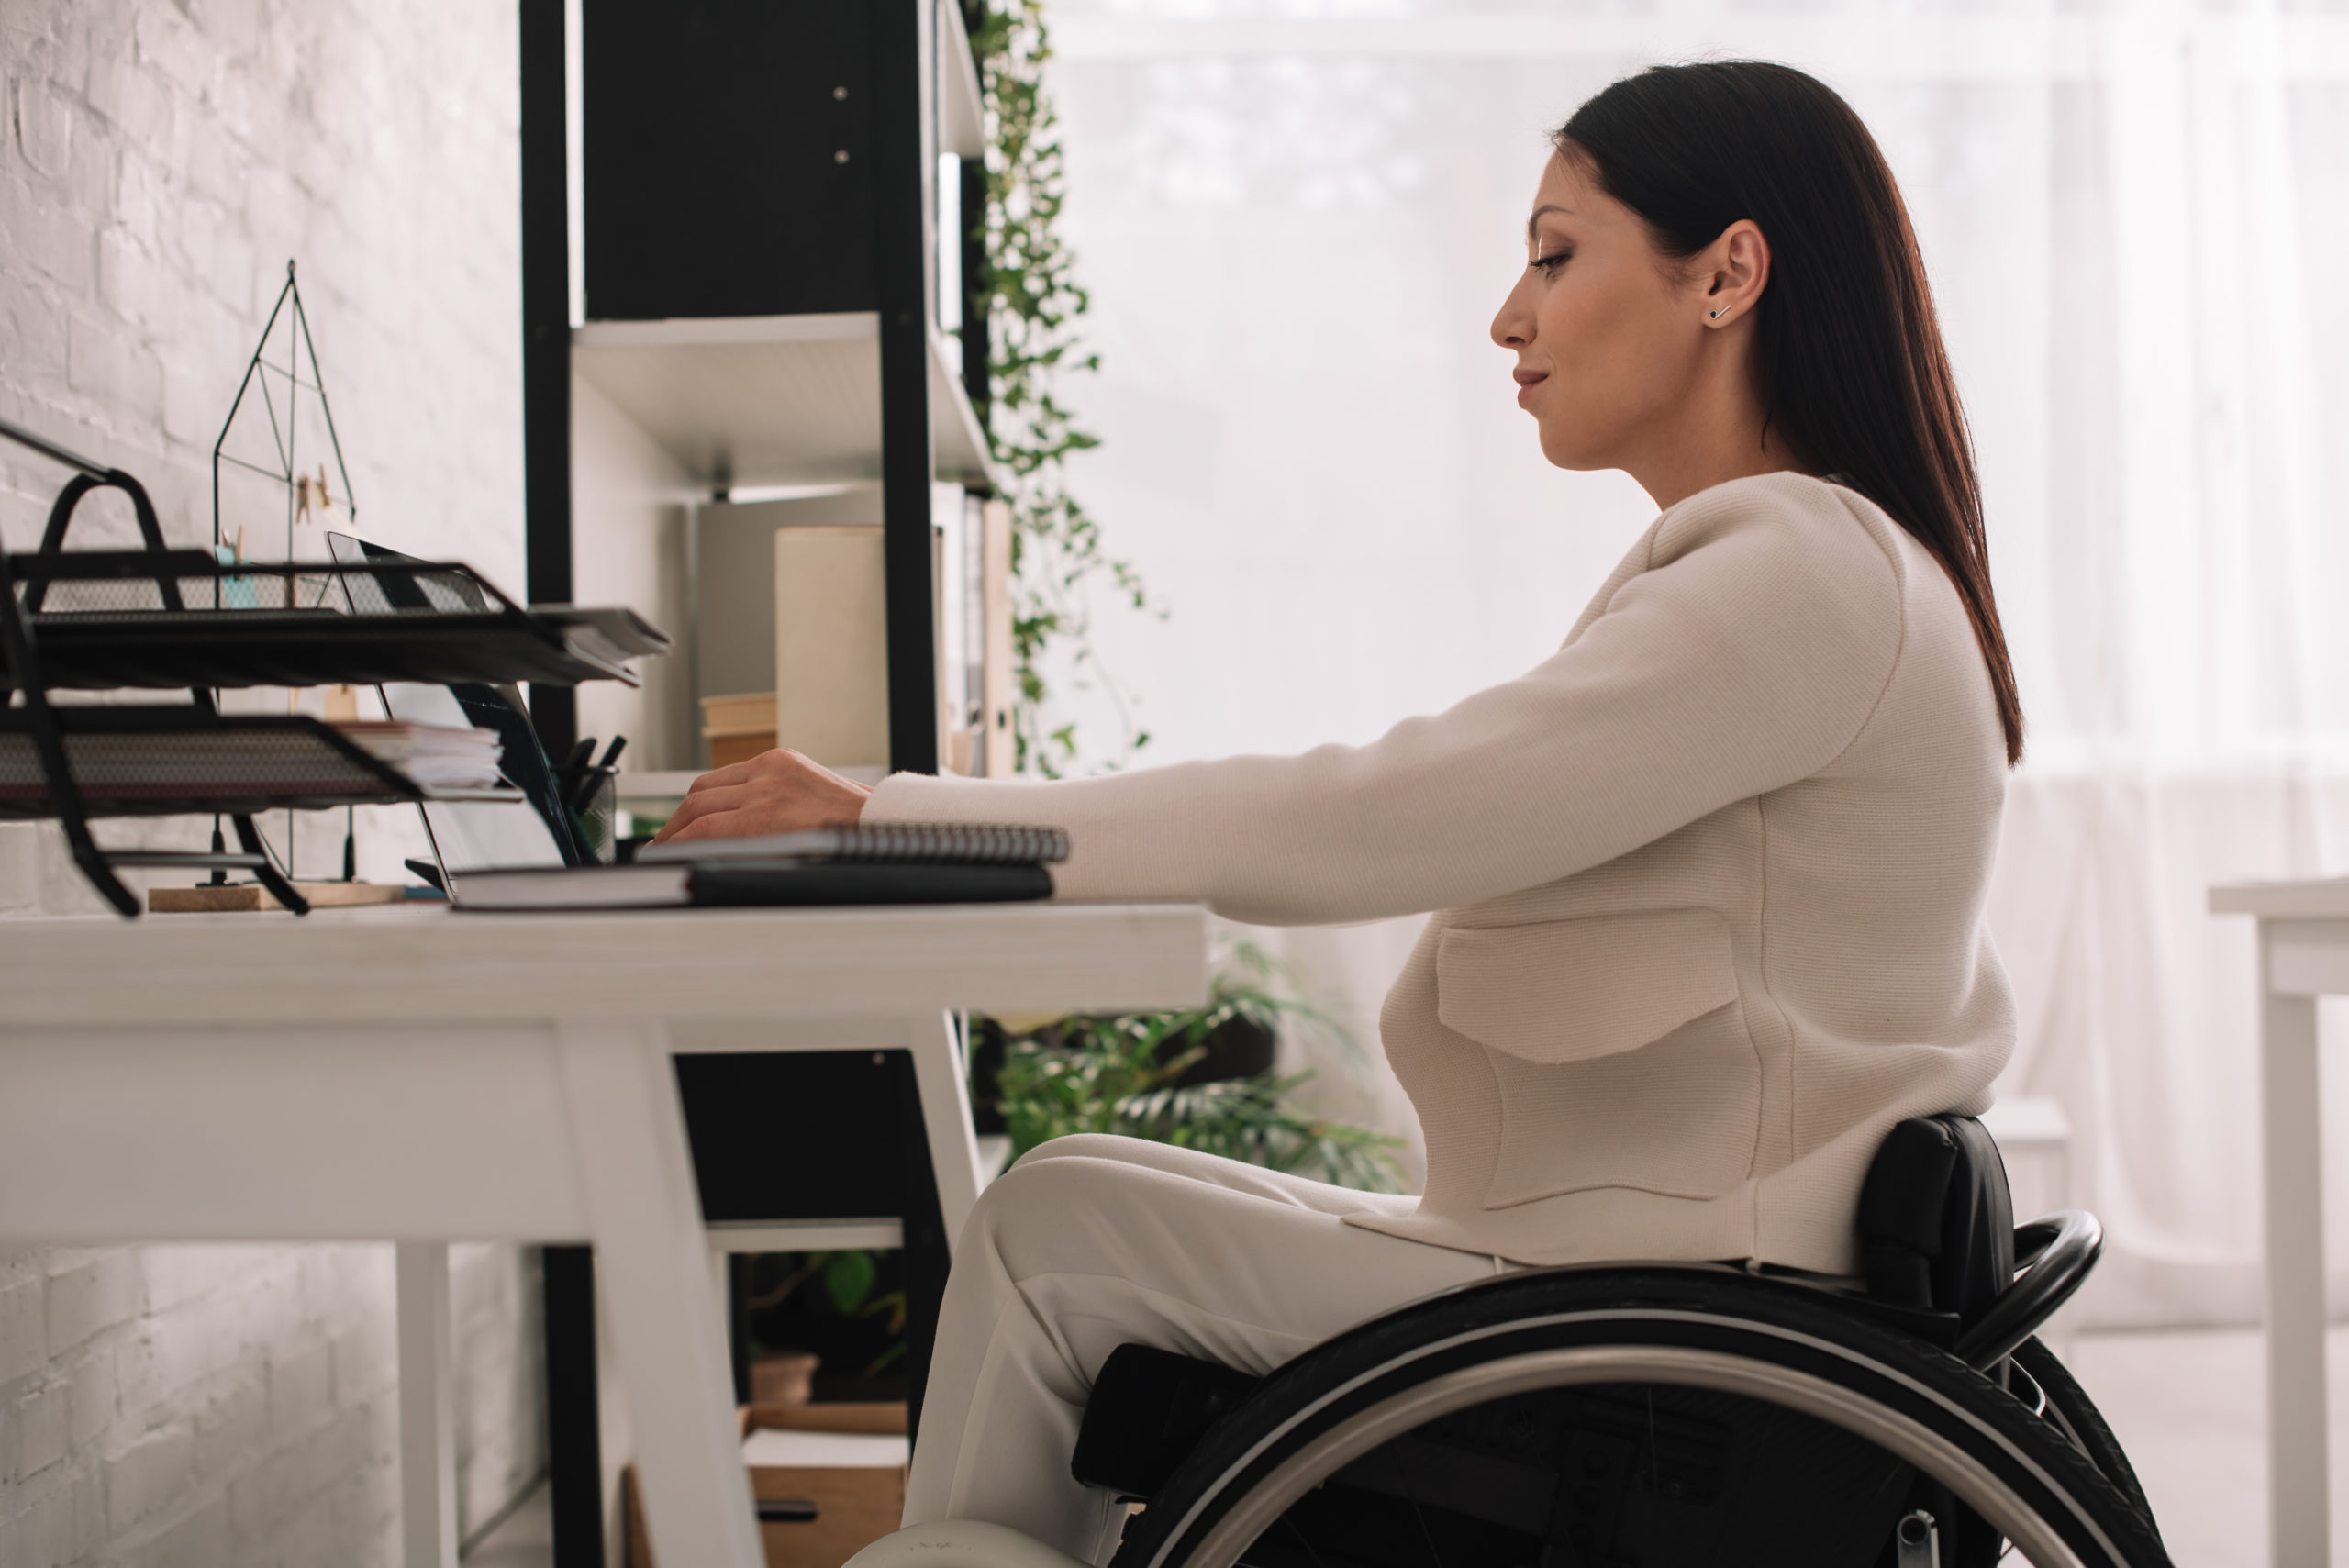 Woman in Wheelchair Taking VR Development Group Courses